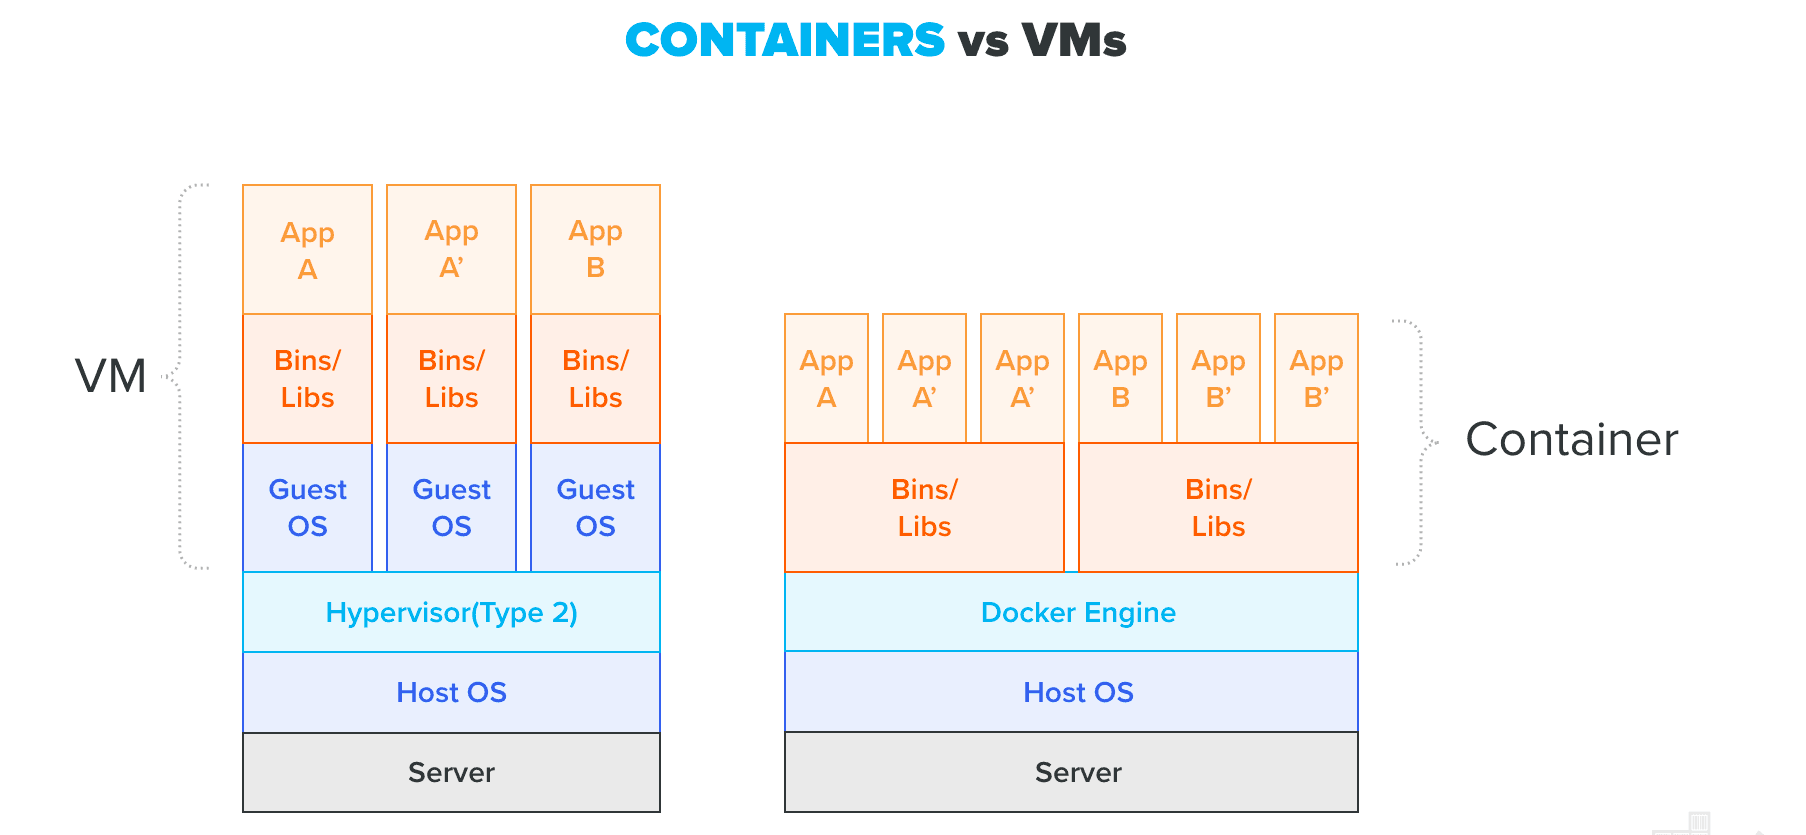 Container vs VMs